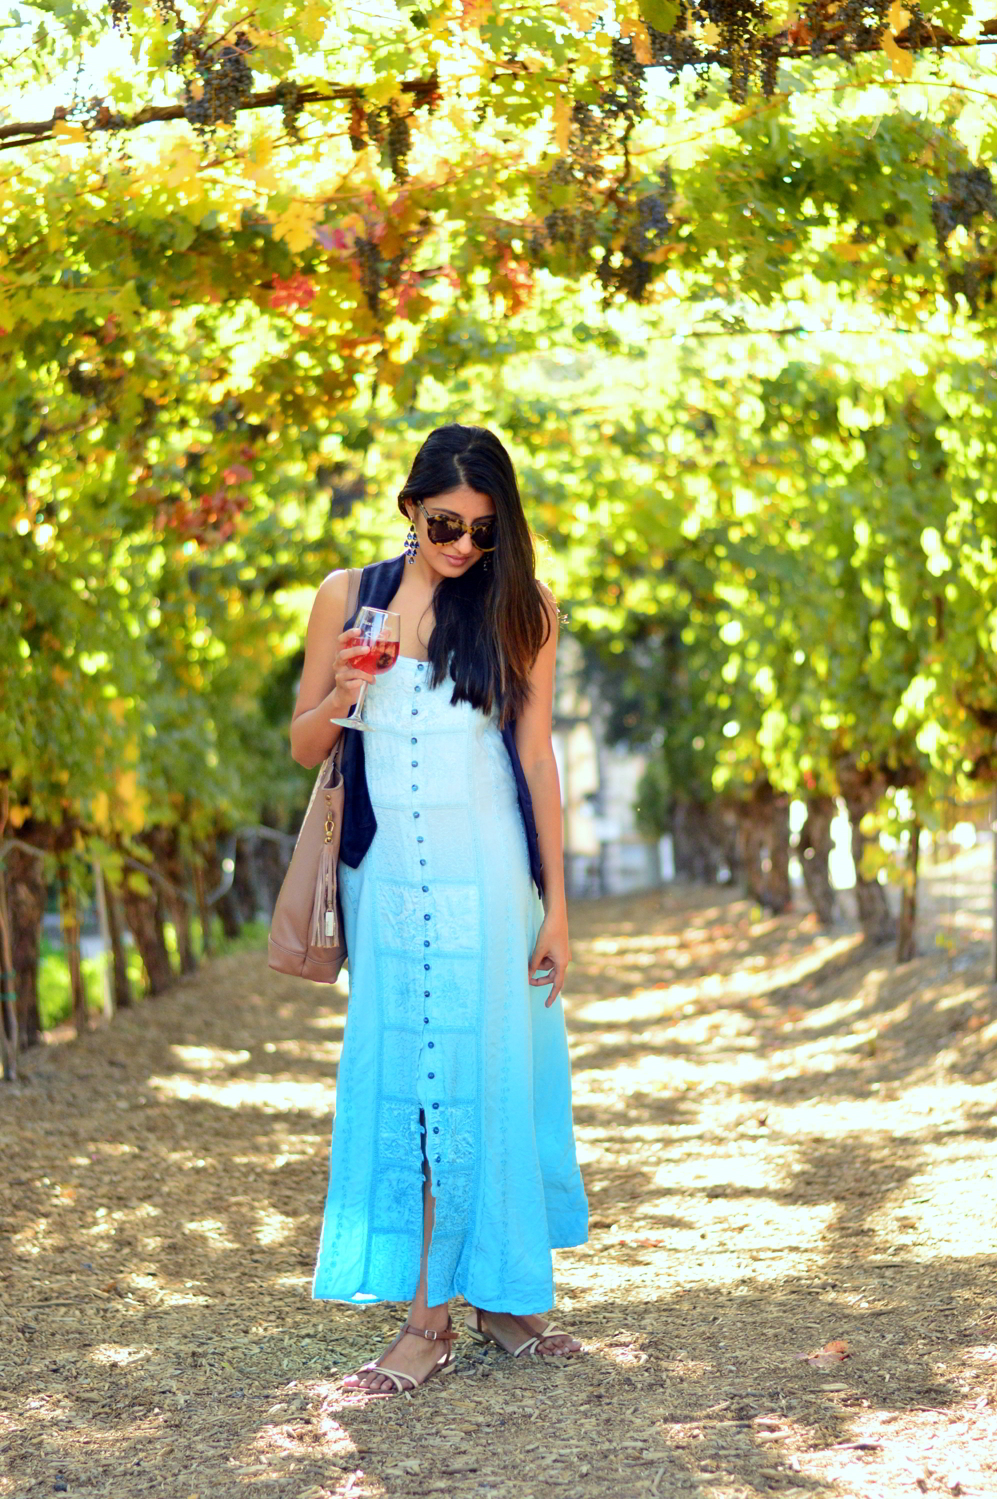 embroidered-maxi-dress-suede-vest-fall-california-blogger-style-outfit 6